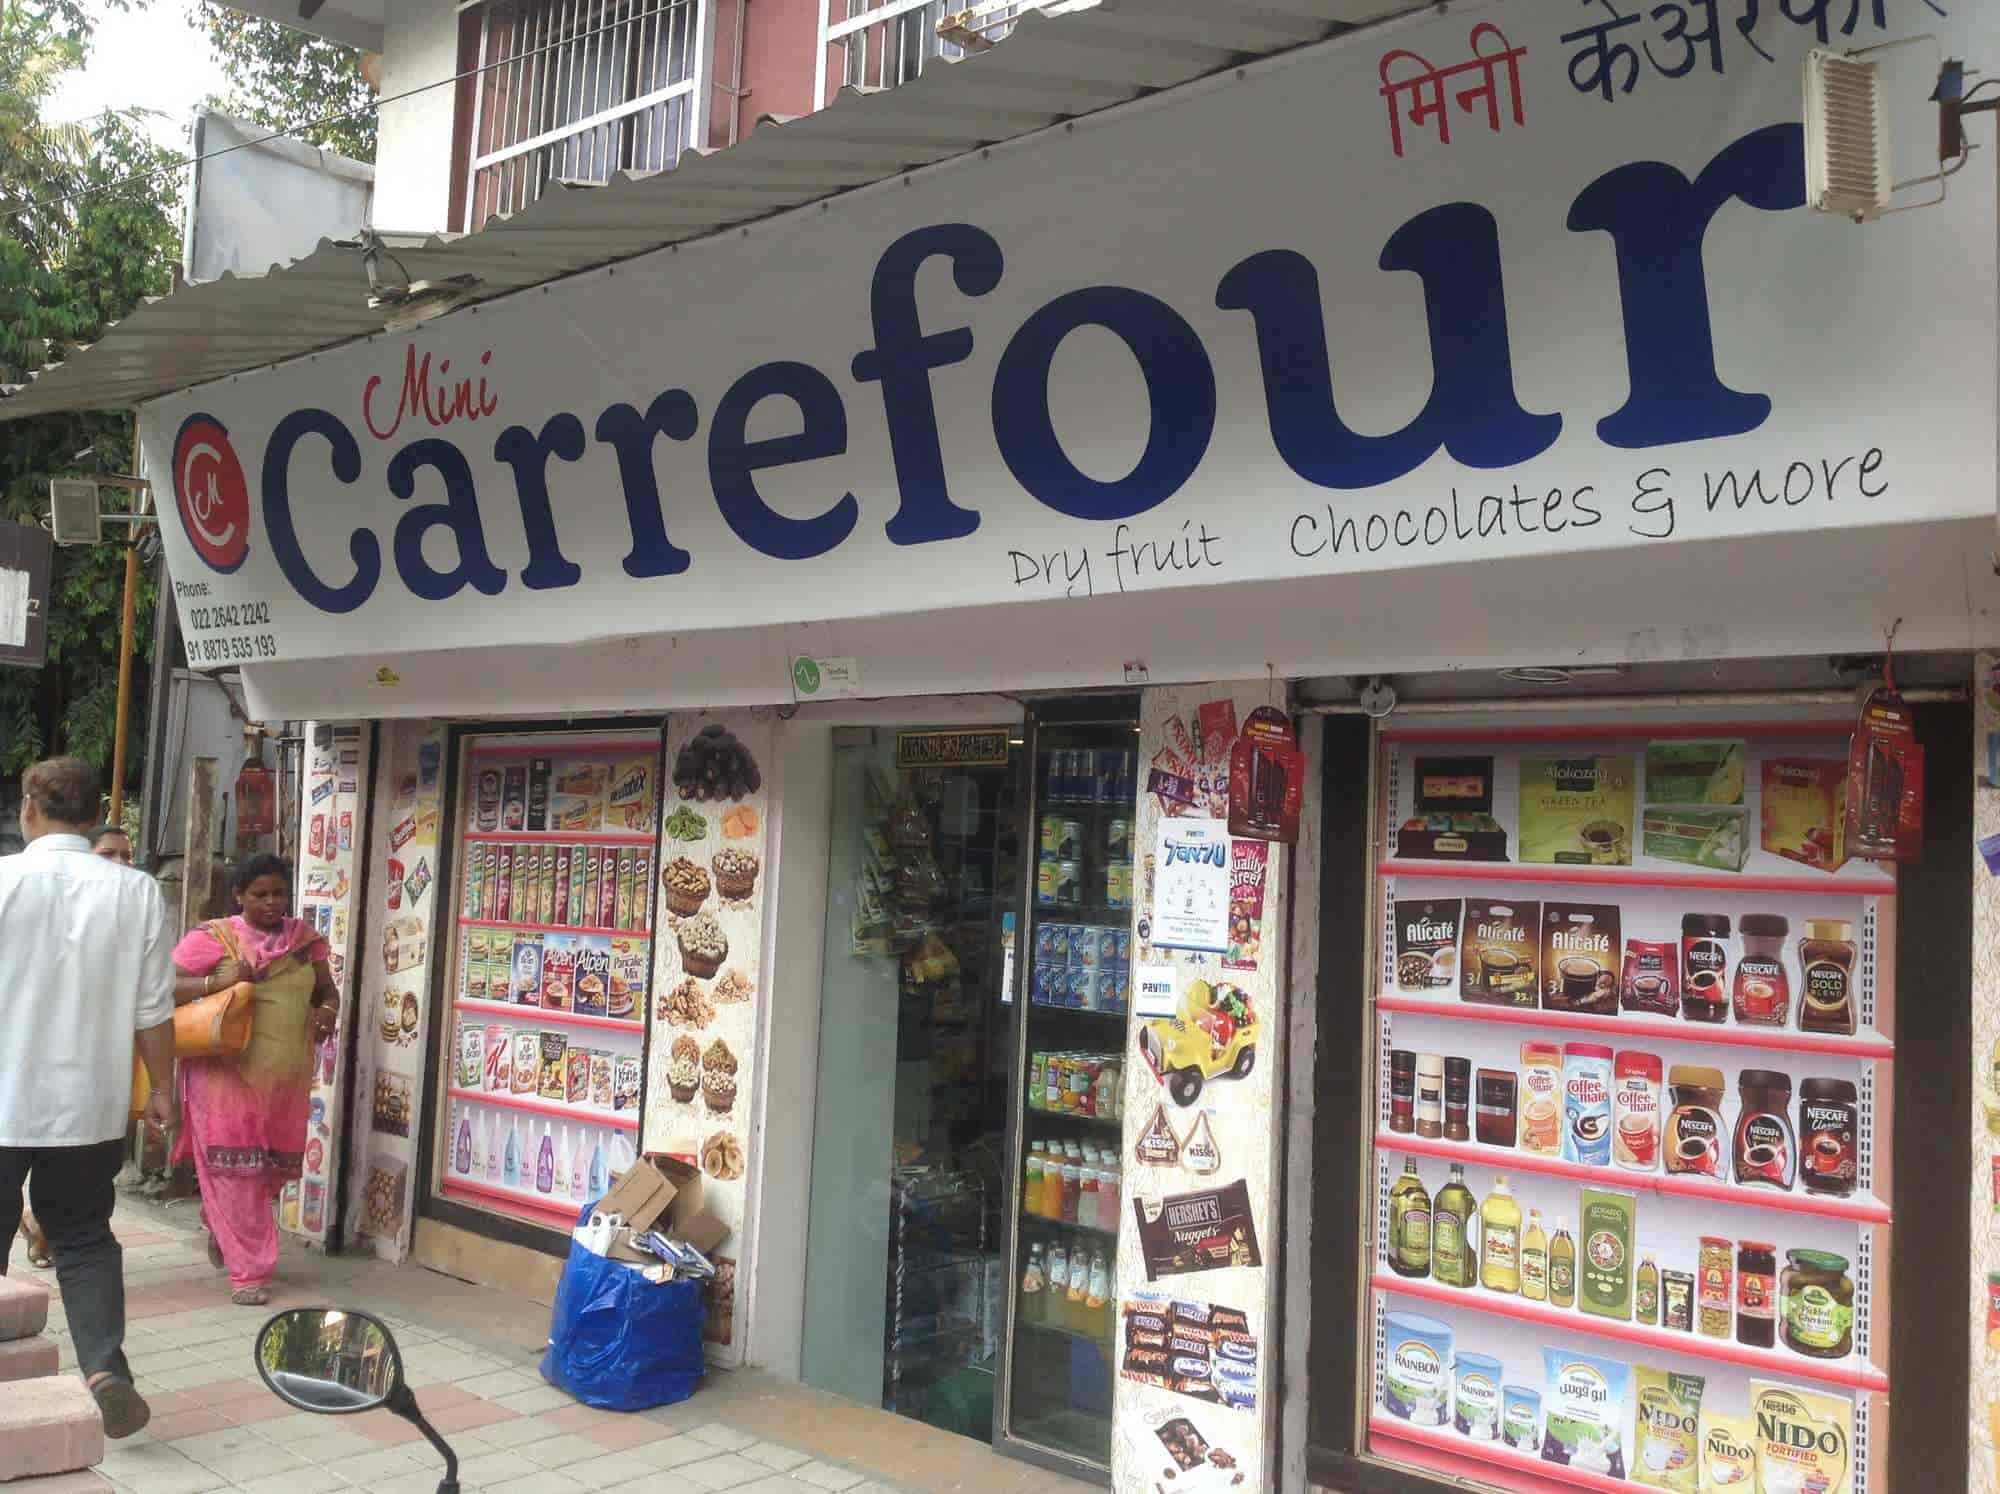 Mini Carrefour, Bandra West - Dry Fruit Retailers in Mumbai - Justdial